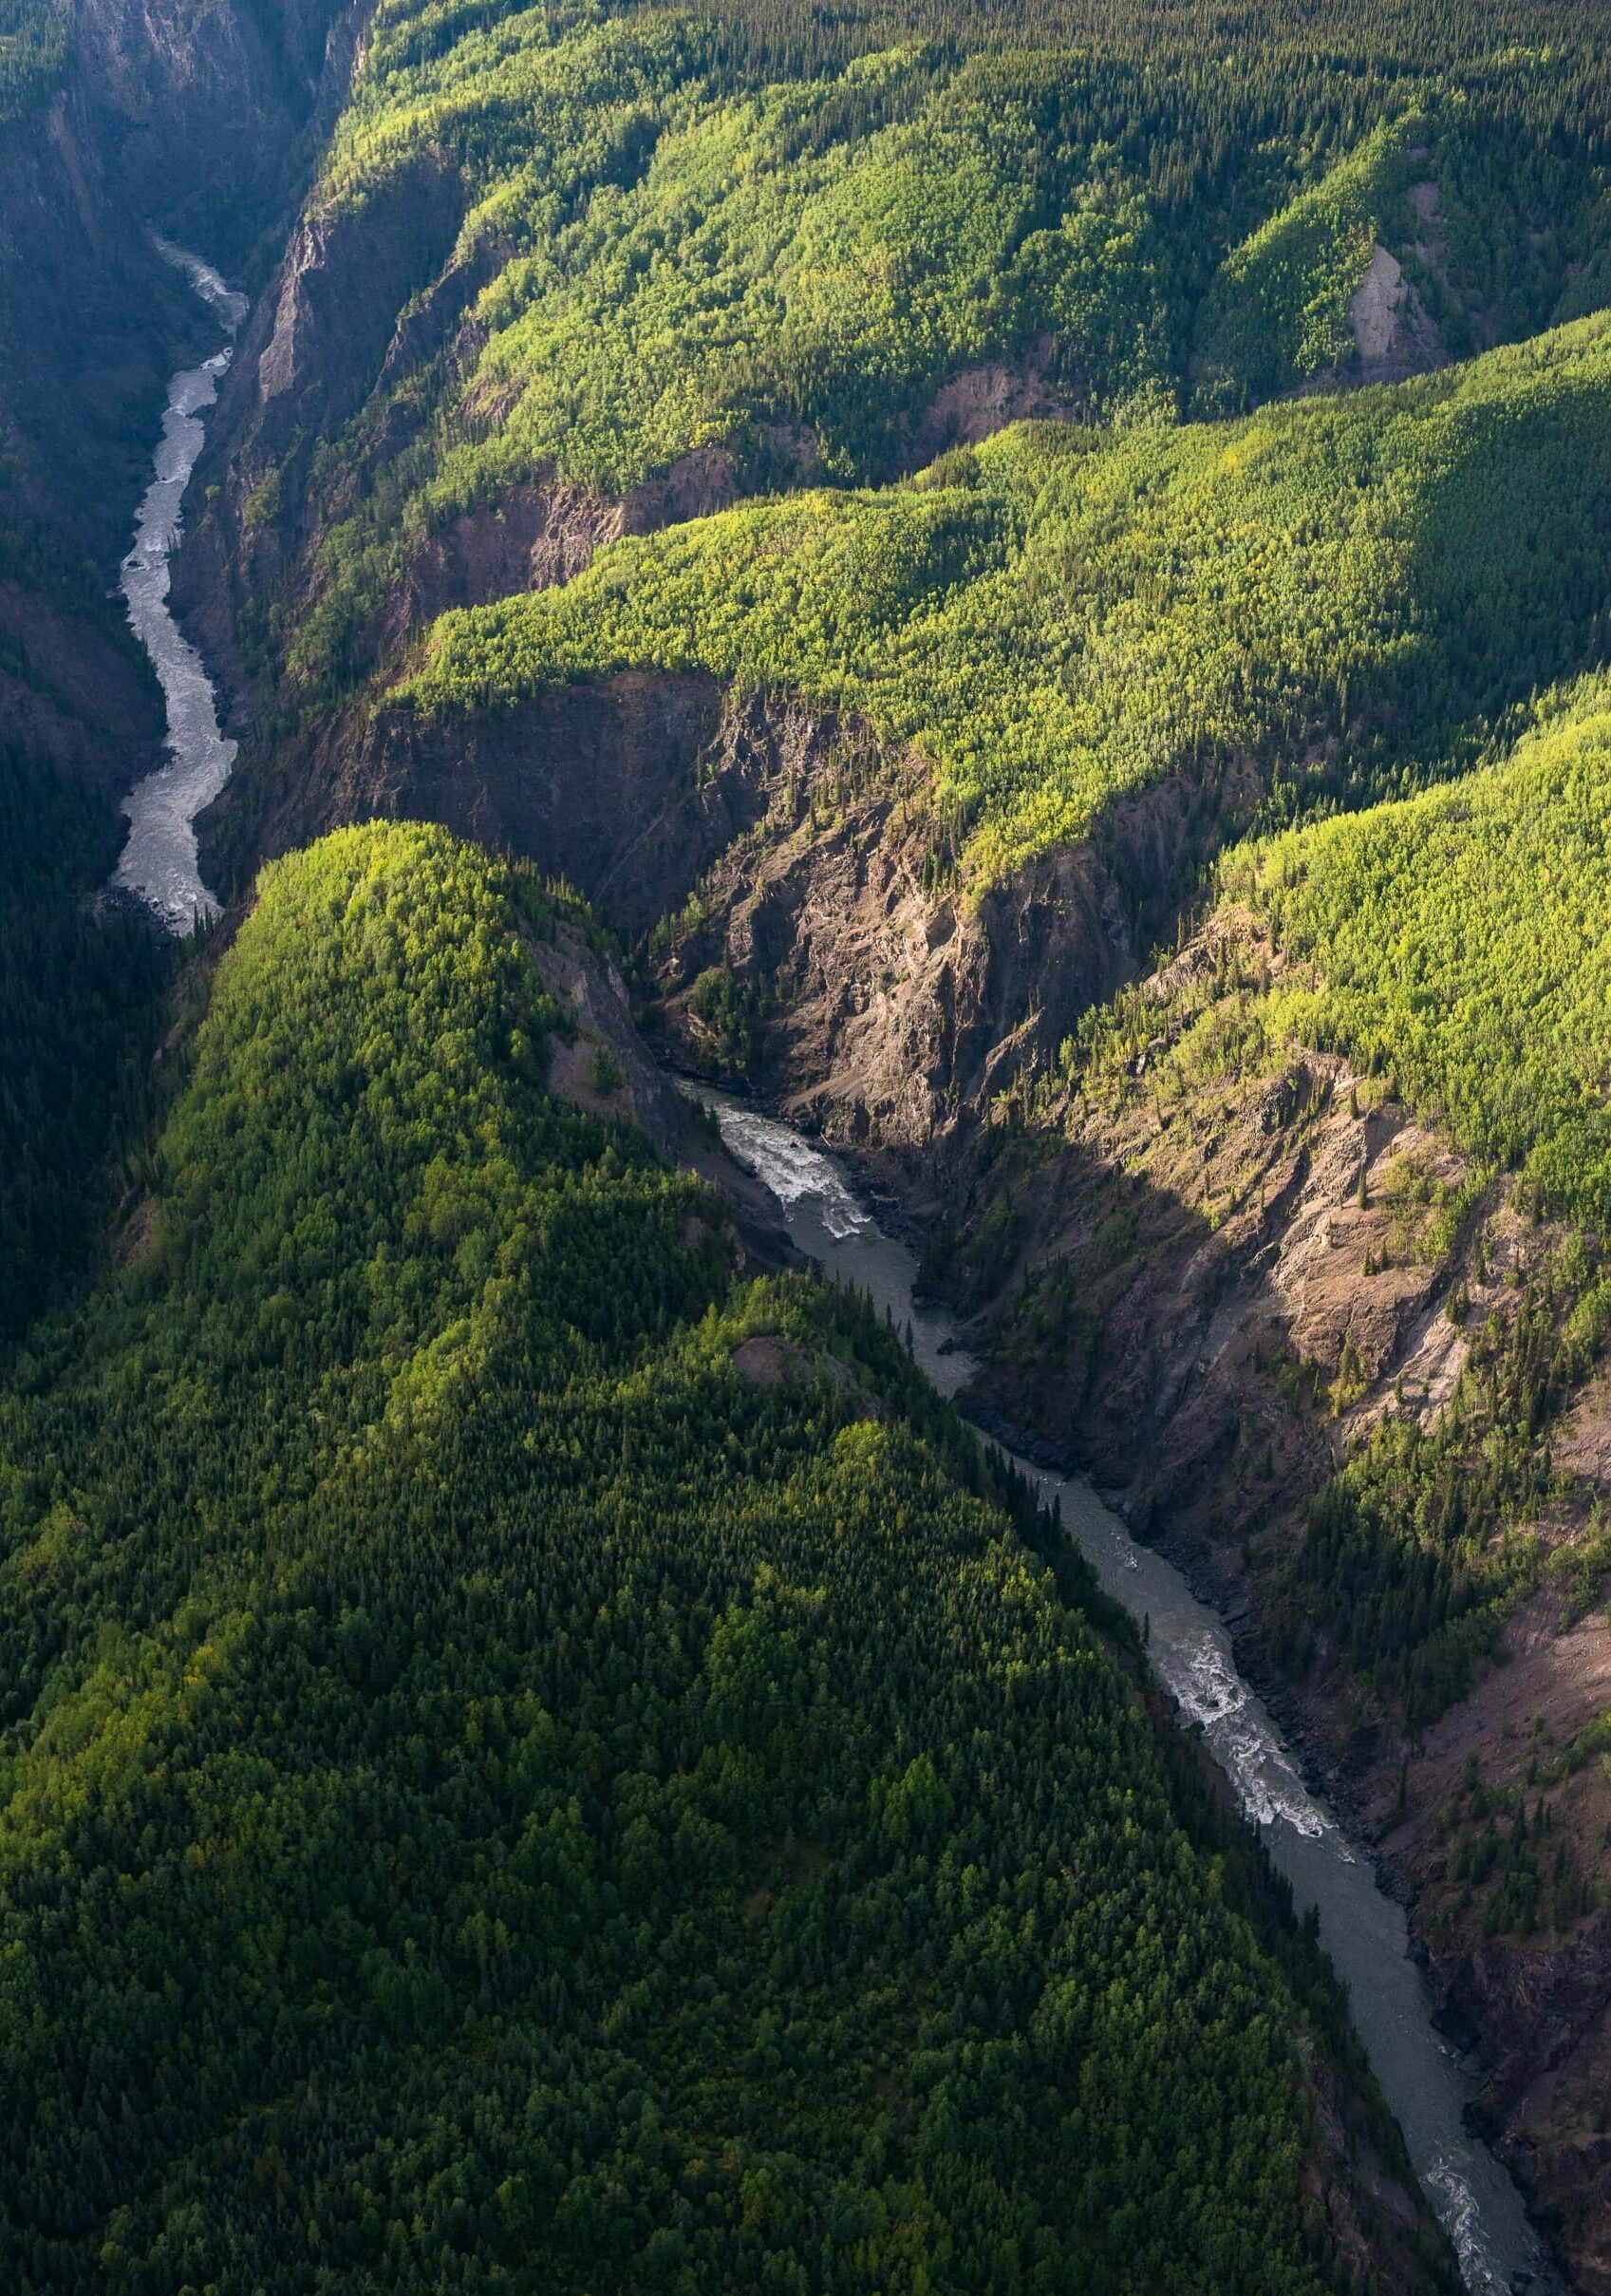 aerial view of Stikine River cutting through Grand Canyon